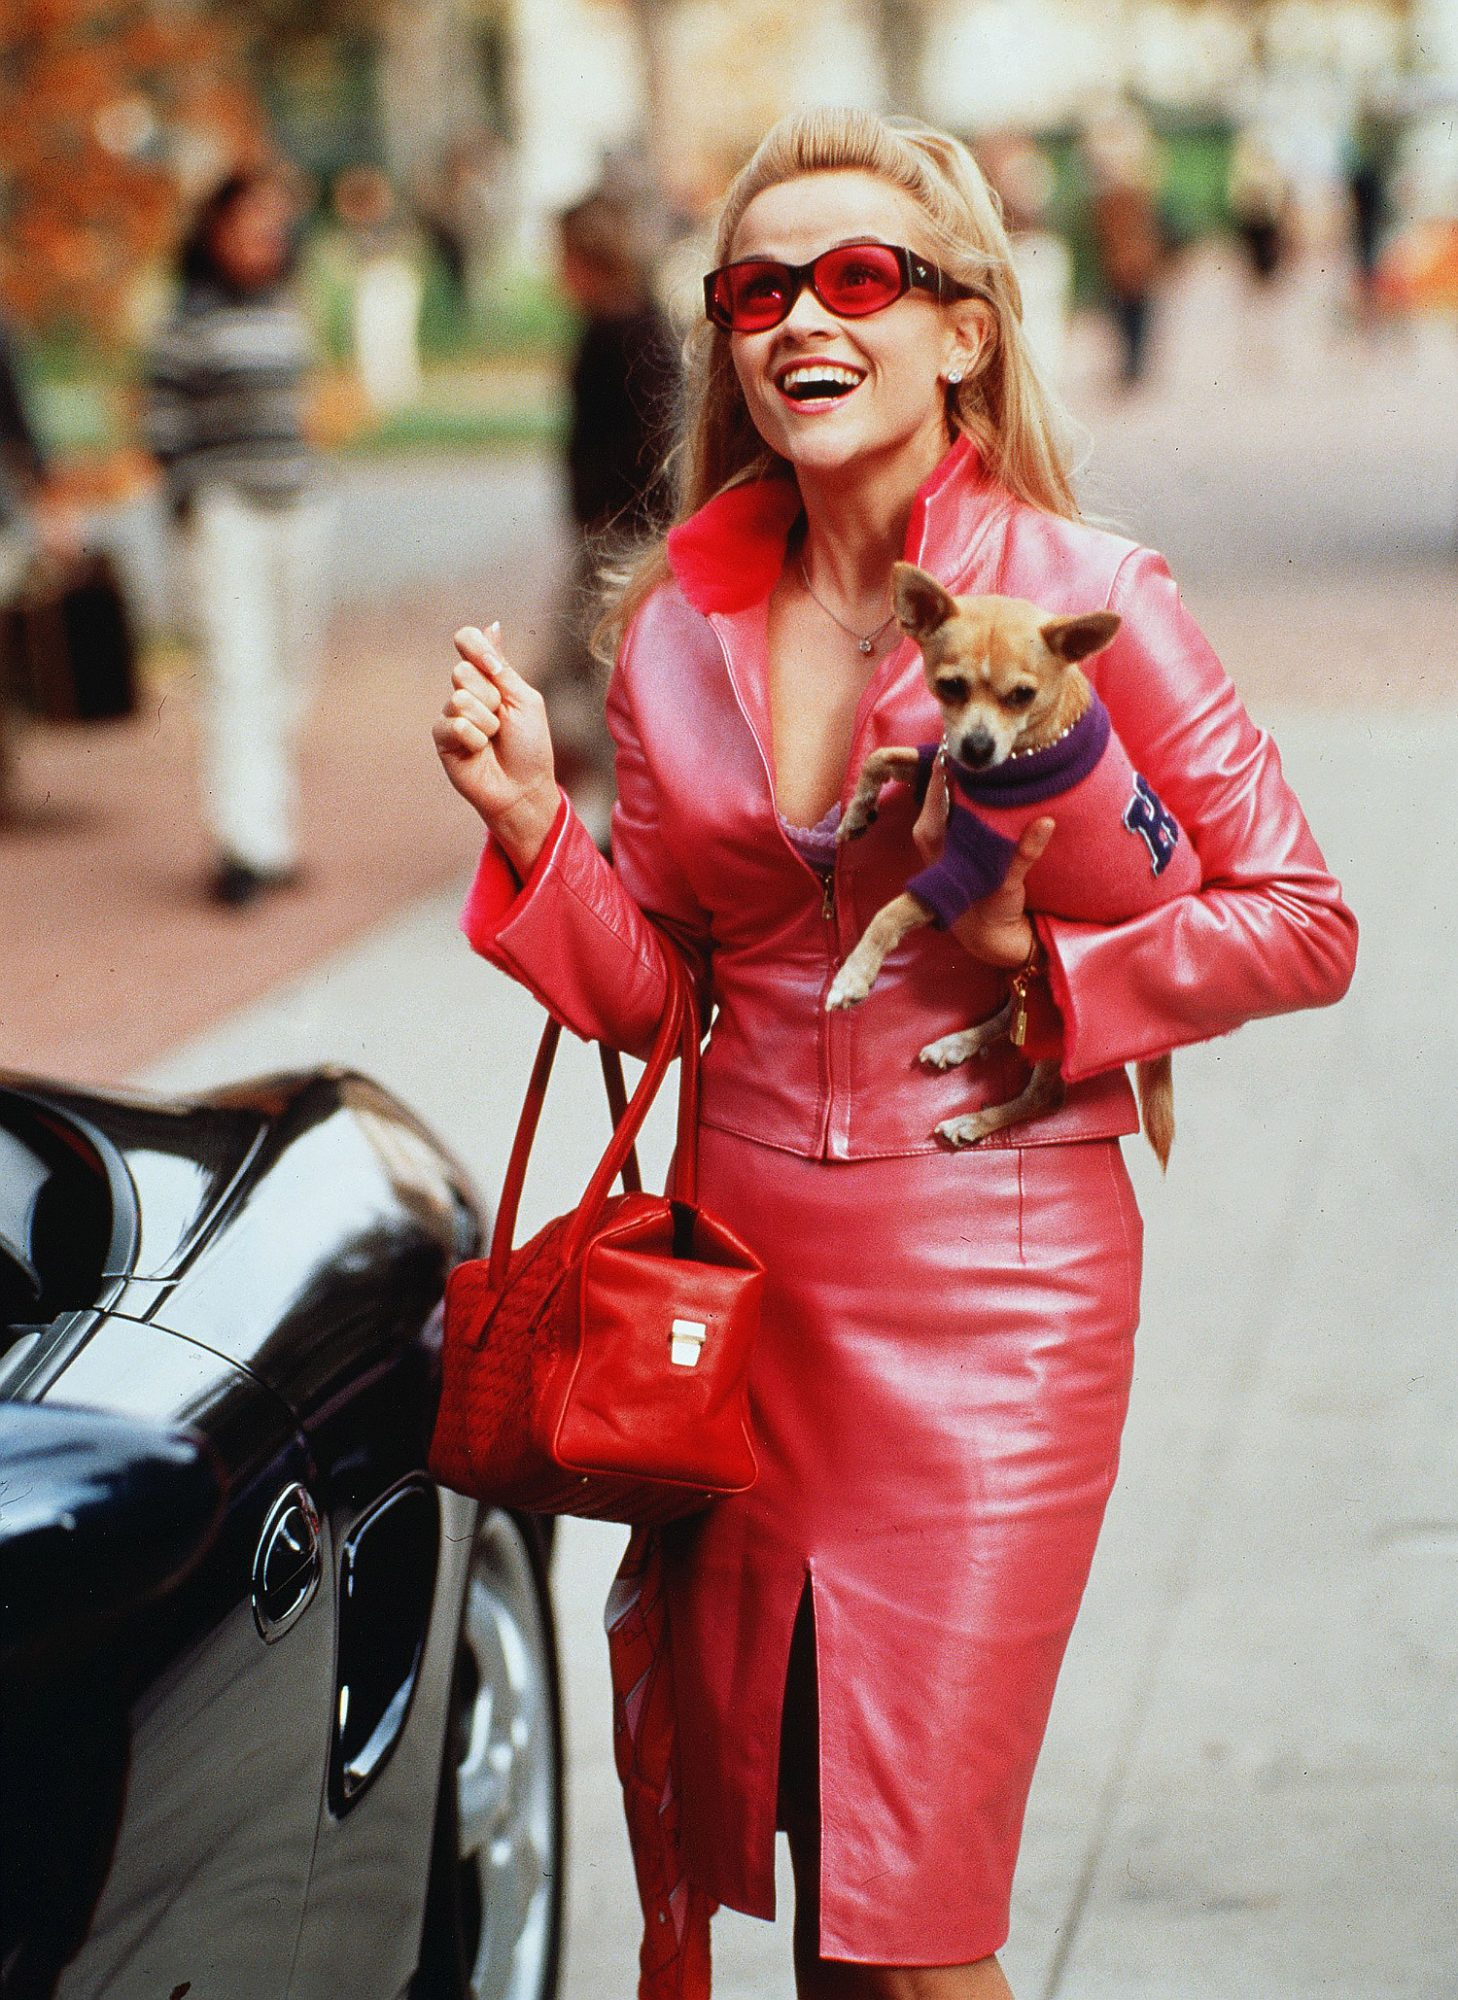 Legally Blonde - 2001